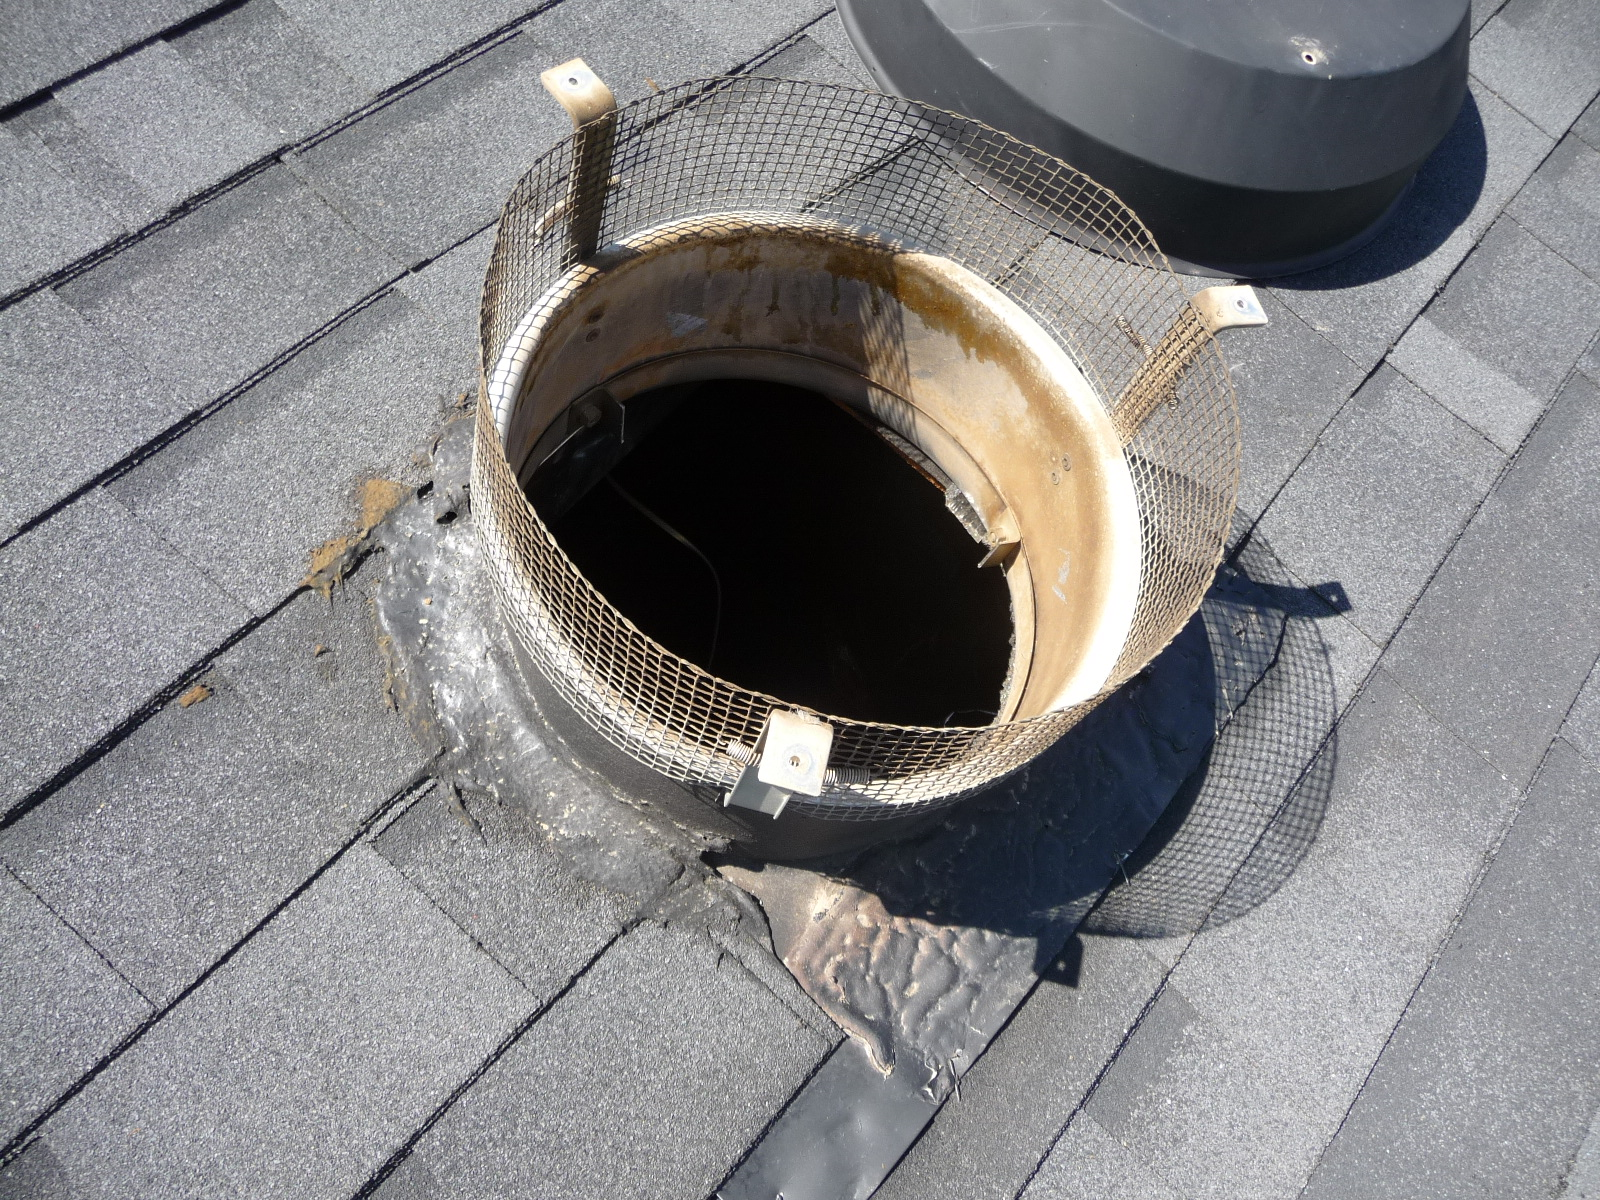 150 Degrees Celsius To Fahrenheit >> How To Put In A New Attic Fan And Cut Electric Costs ...